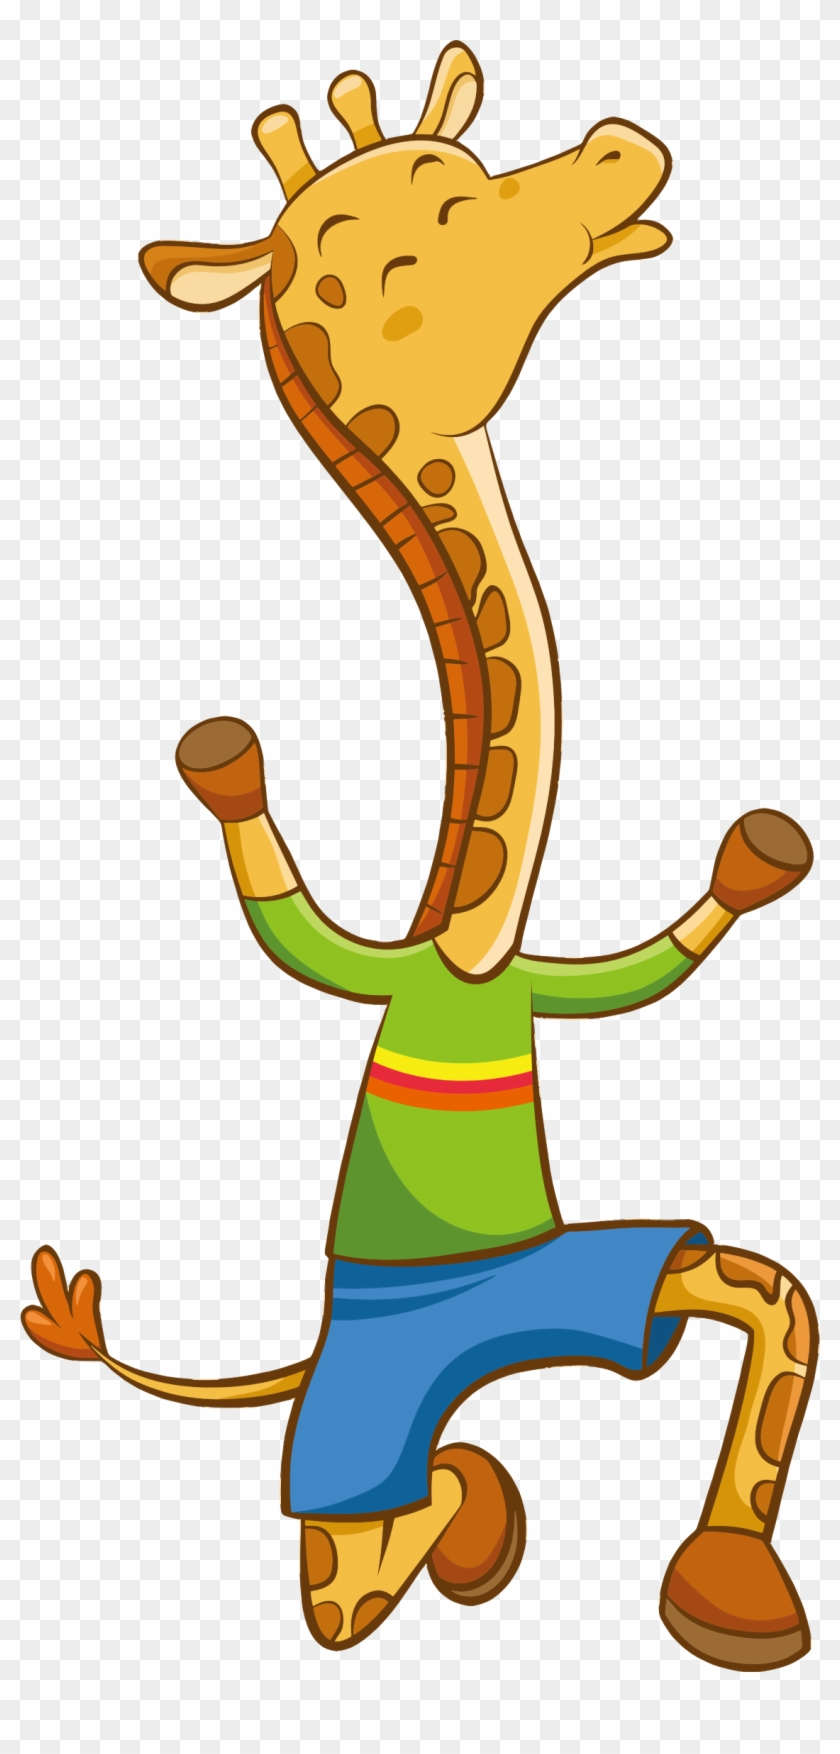 Clipart Cartoon Giraffe Png.